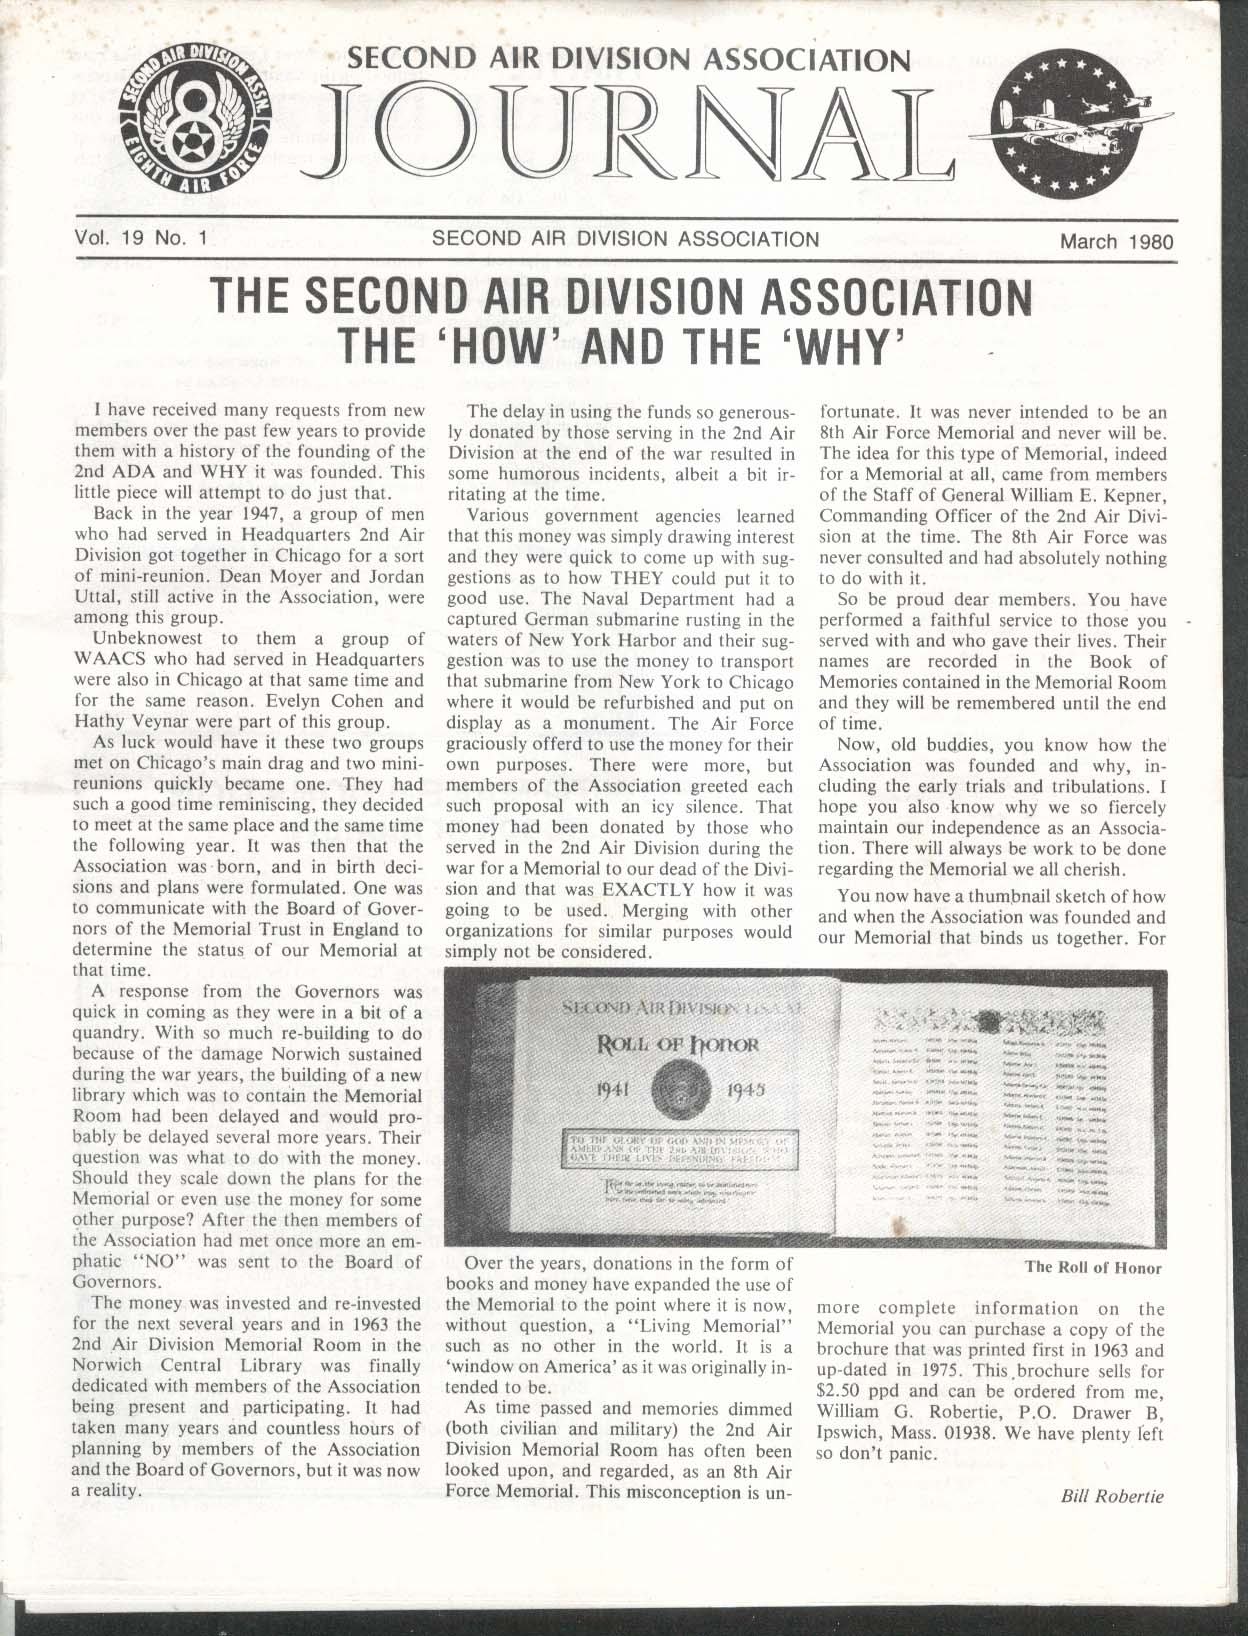 2nd Air Division Journal 8th Air Force Vol 19 #1 Harry Dane CK Pool 3 1980